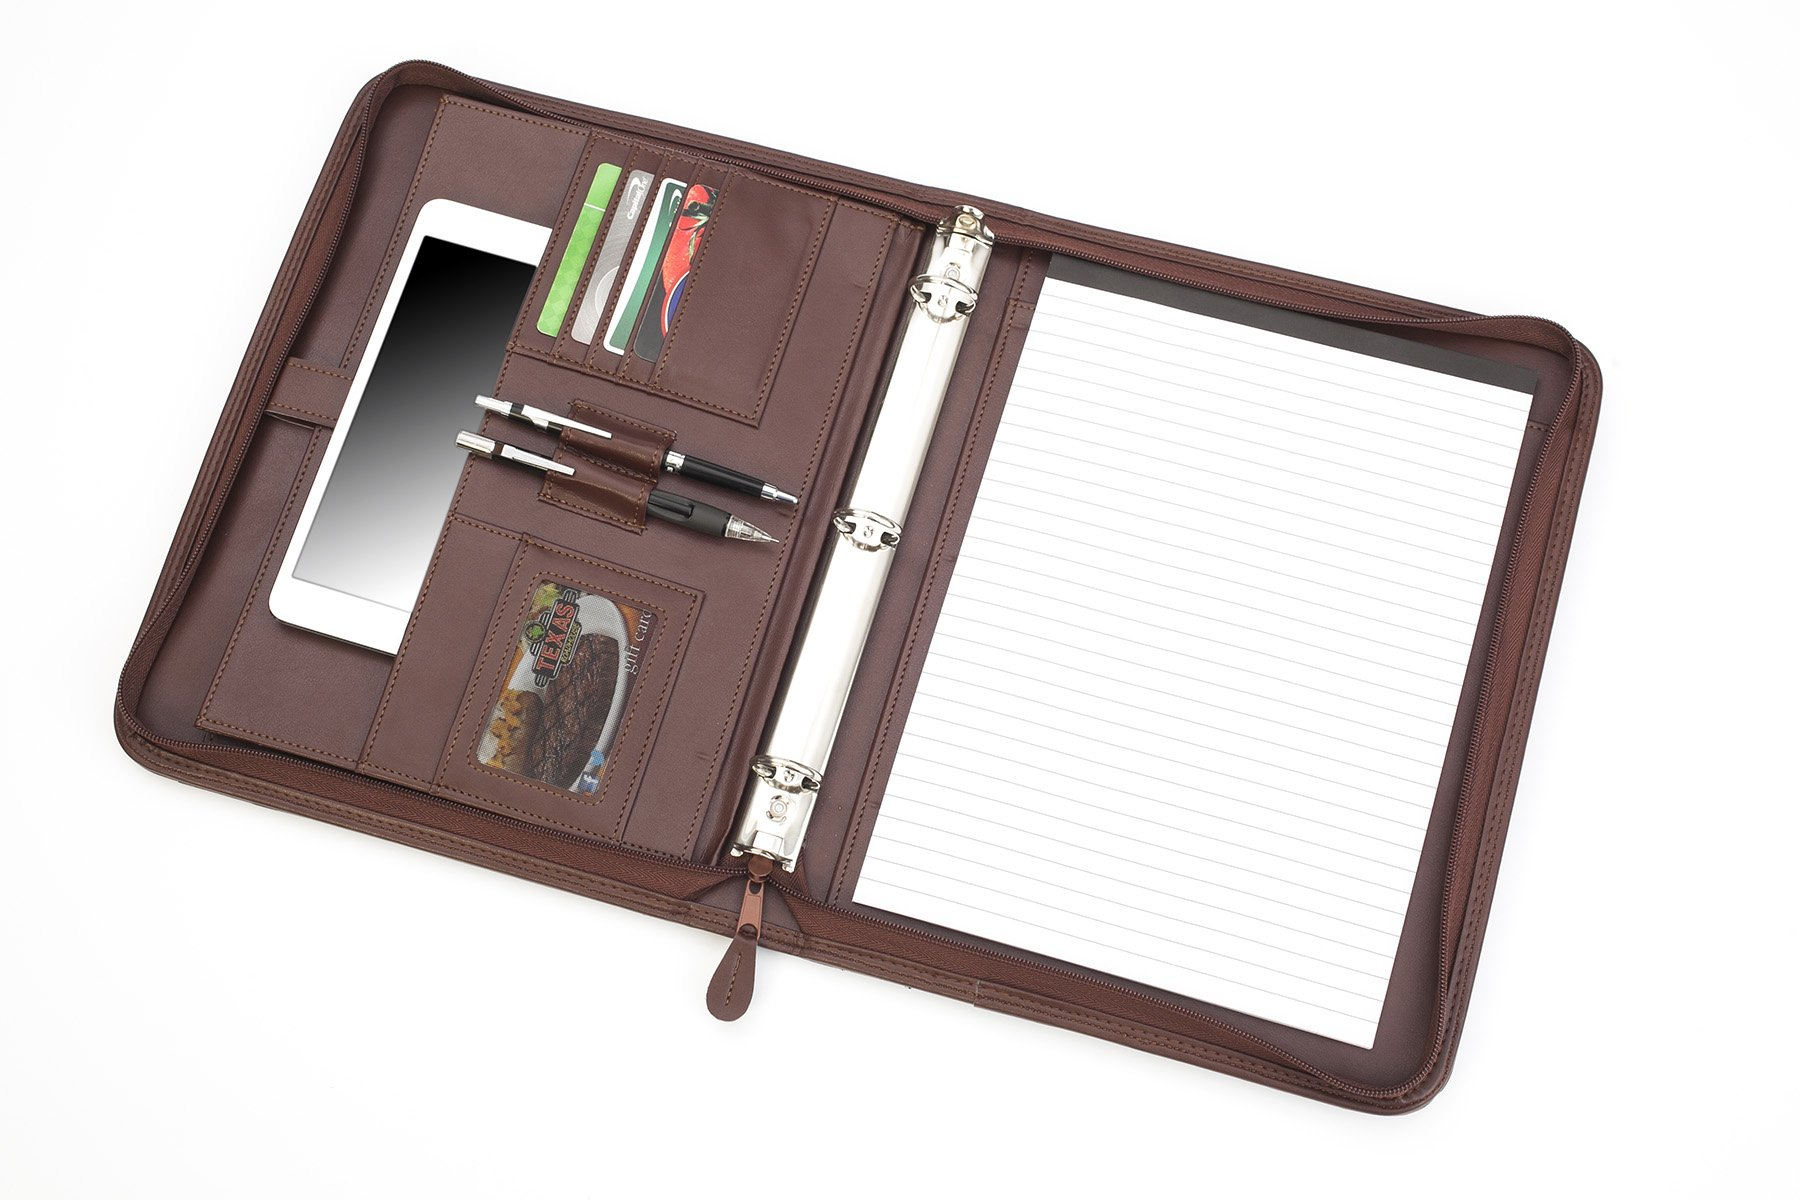 Professional Business Padfolio Portfolio Briefcase Style Organizer Folder with Handles Notepad and 3 Ring Binder – Almond Brown Synthetic Leather